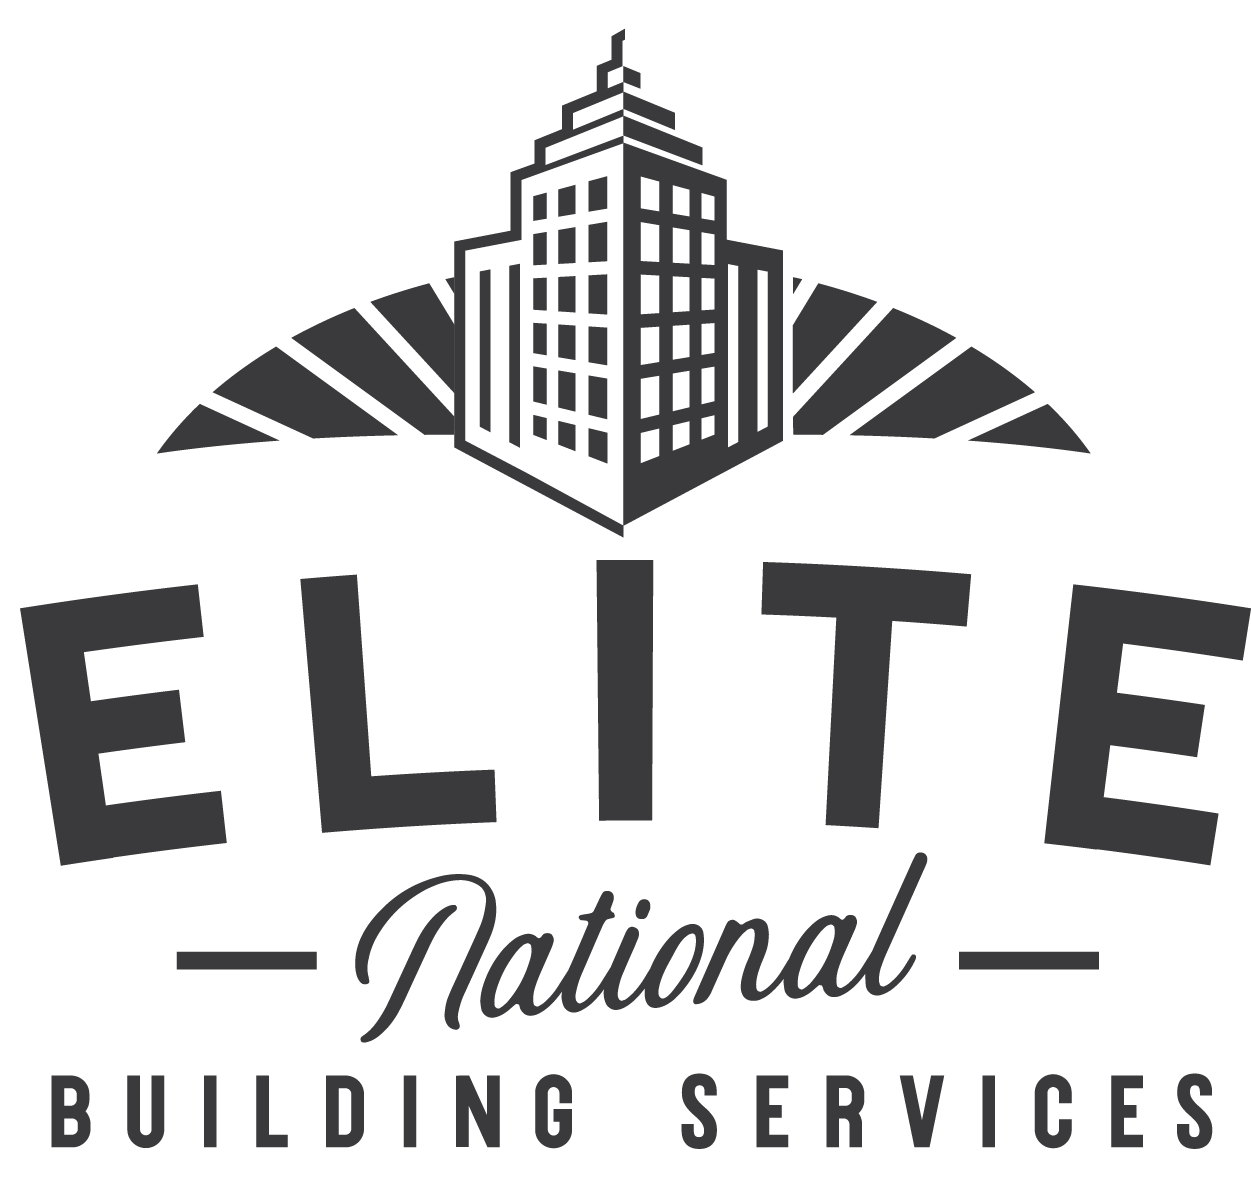 Elite National Building Services: Business Cleaning In Columbus Ohio